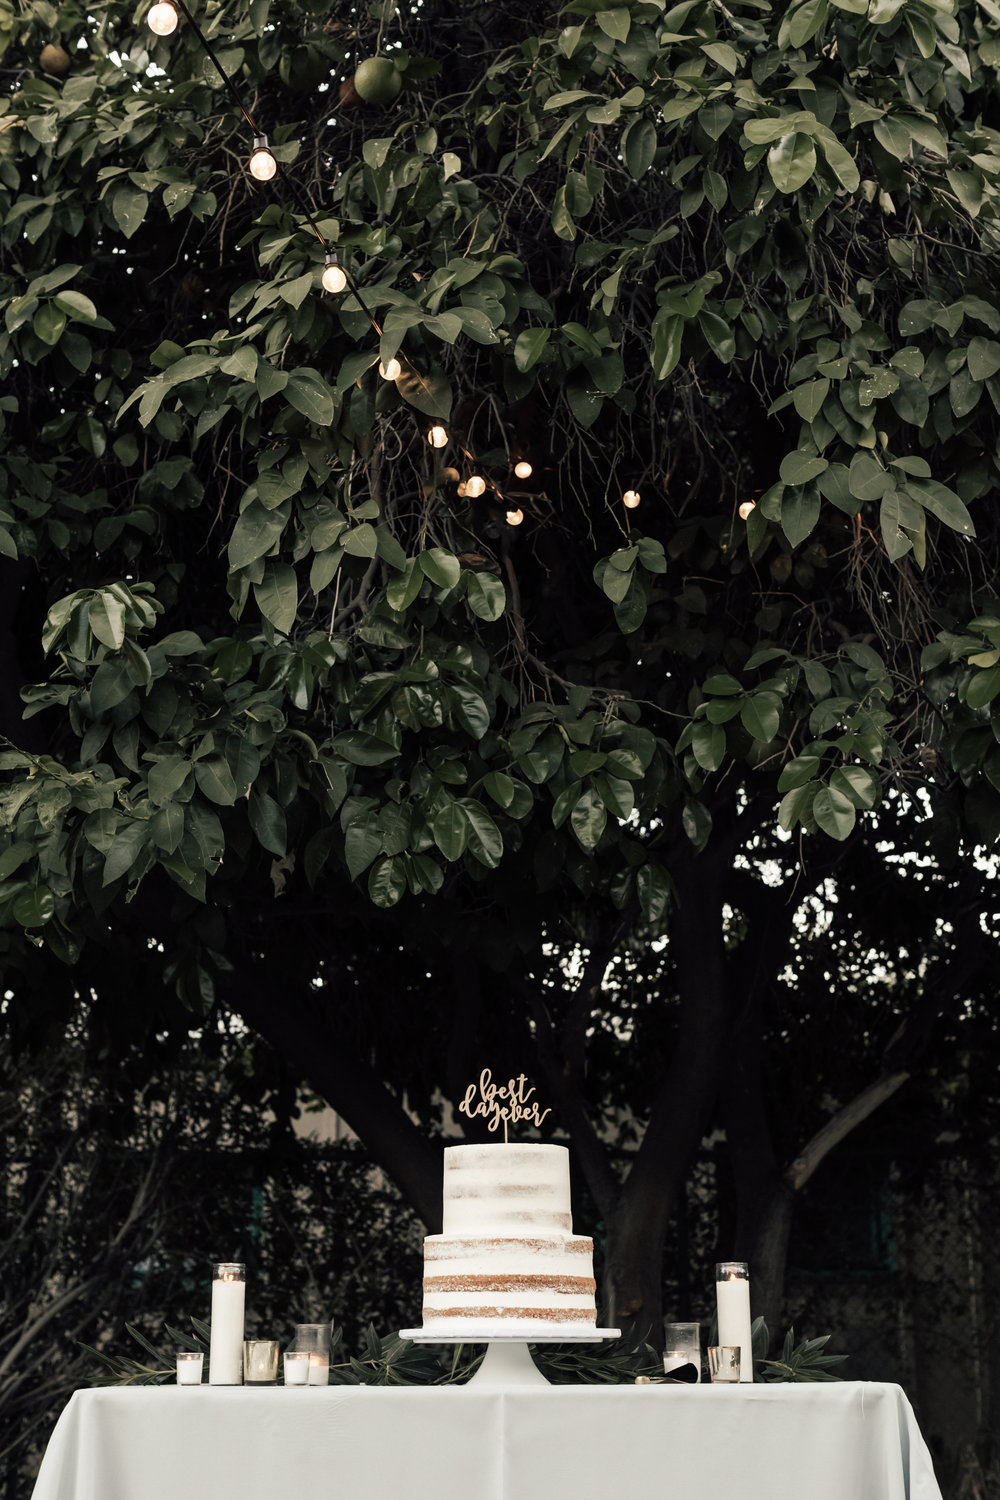 HailleyHowardPhotography_Wedding_Casa+Cody+Laura-9667.jpg